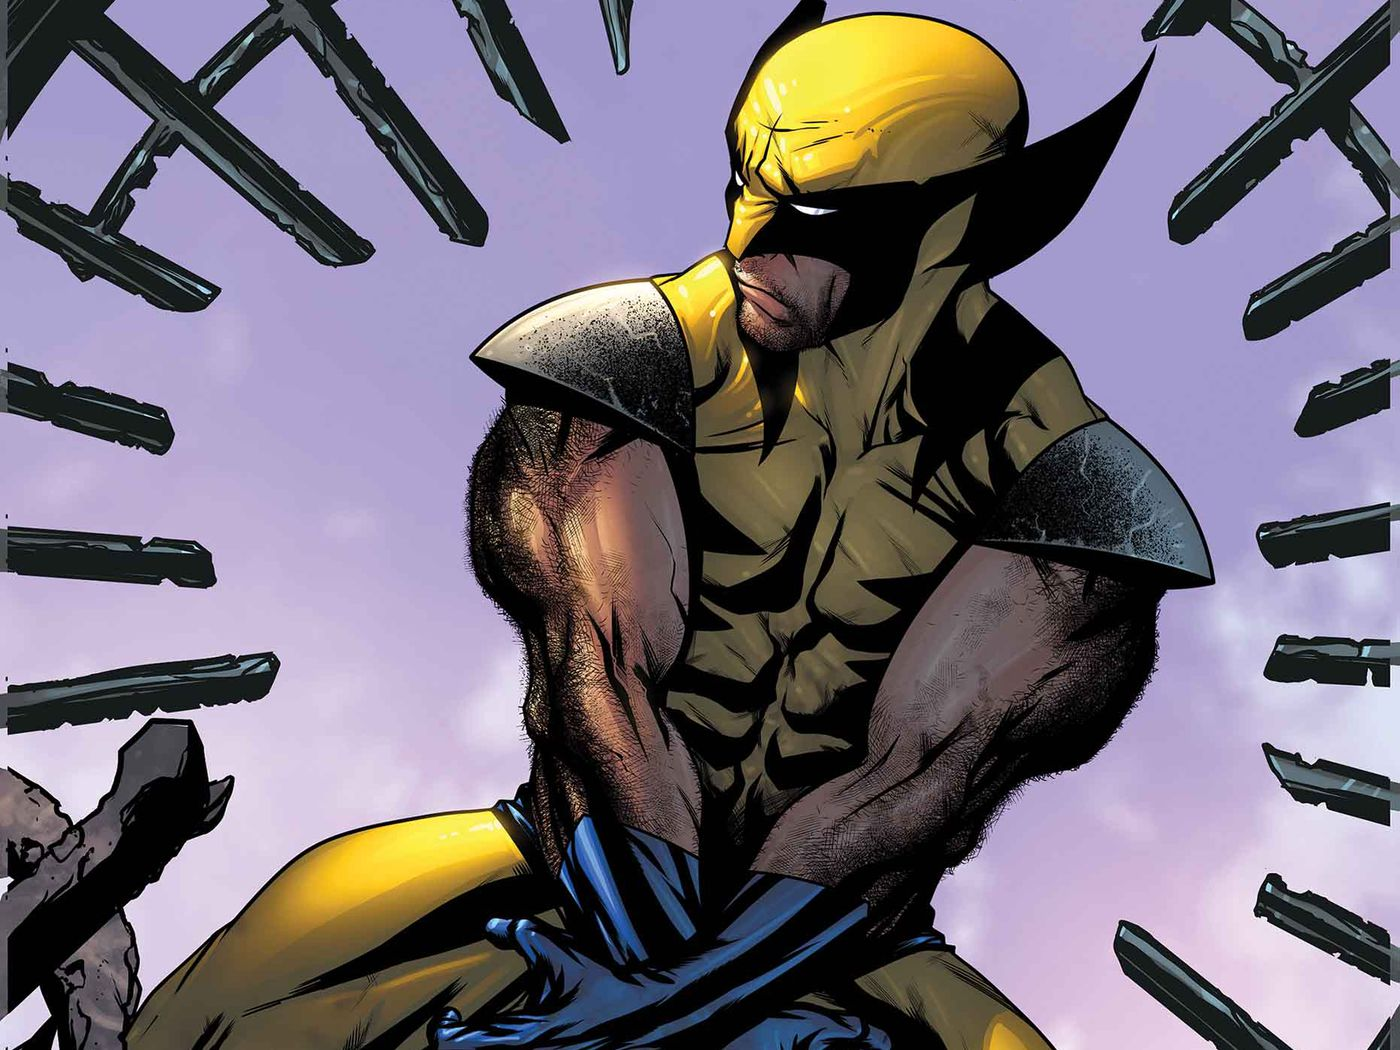 X Men S Wolverine Is Back From The Dead And Now Hunting Infinity Stones Polygon